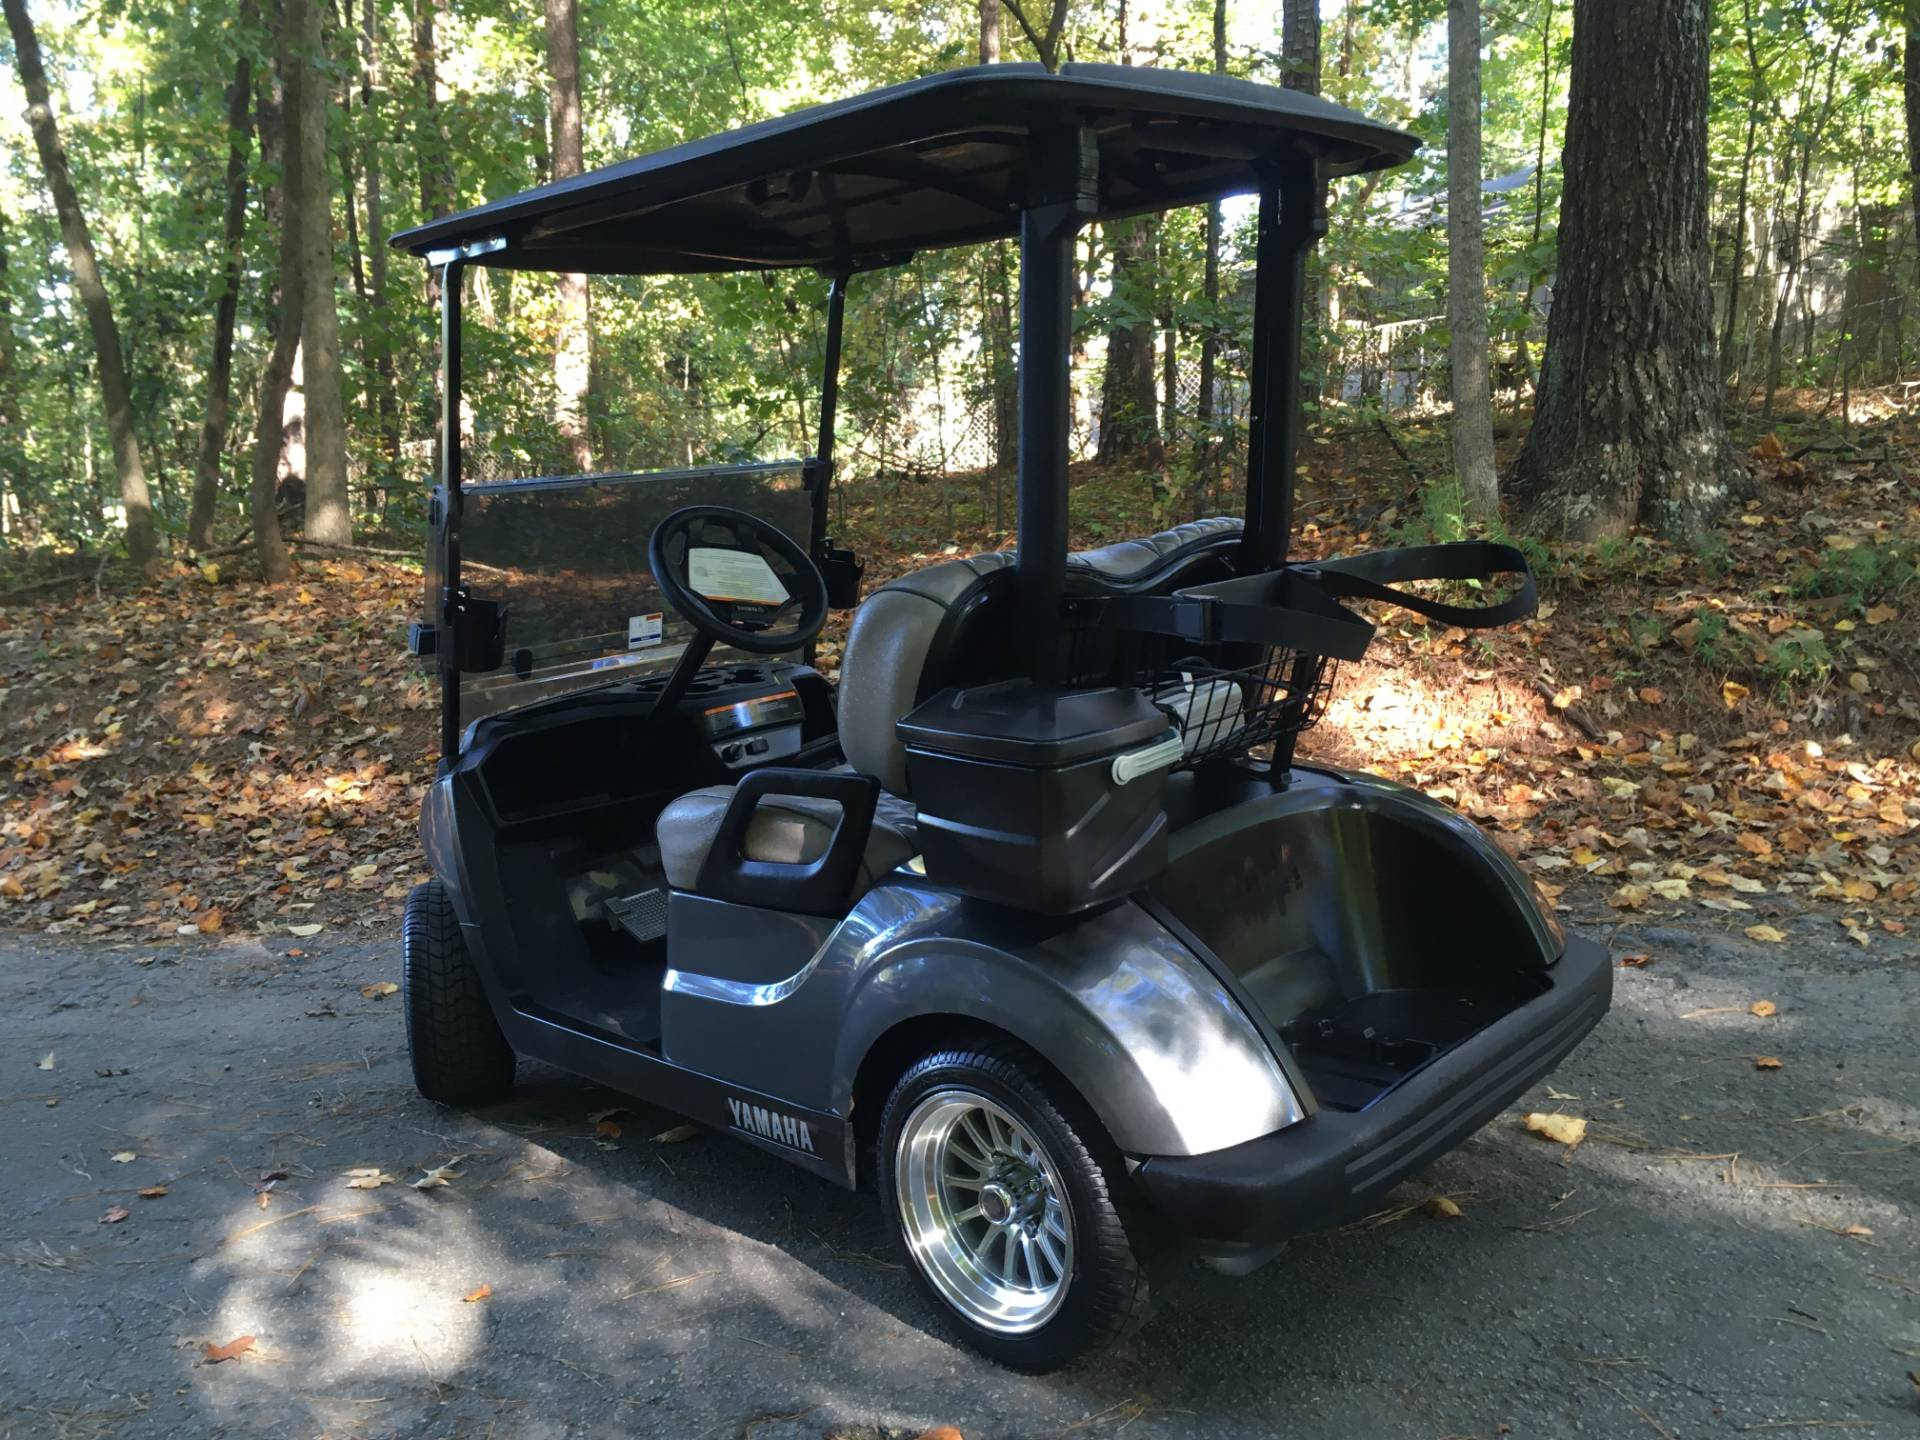 2018 YAMAHA DRIVE 2 ELECTRIC GOLF CART in Woodstock, Georgia - Photo 3